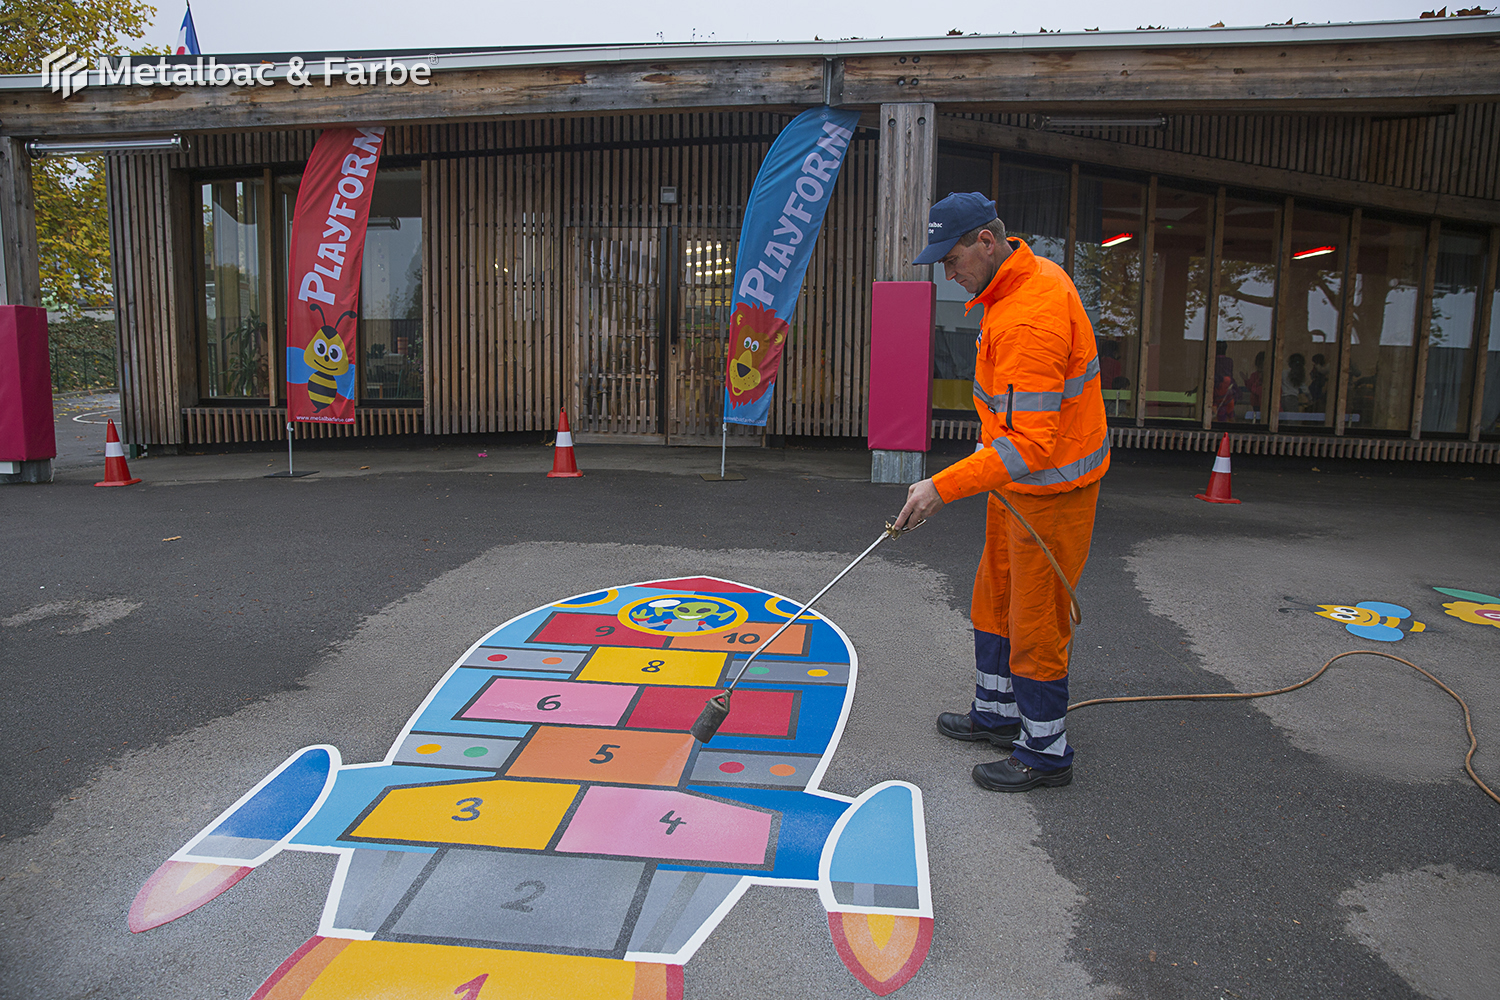 playground markings games; playground games for kids; outdoor play; math games; school yard games; educational games; asphalt games; interactive games; road markings signs; road traffic signs; crocodile games; hopscotch game; logical games